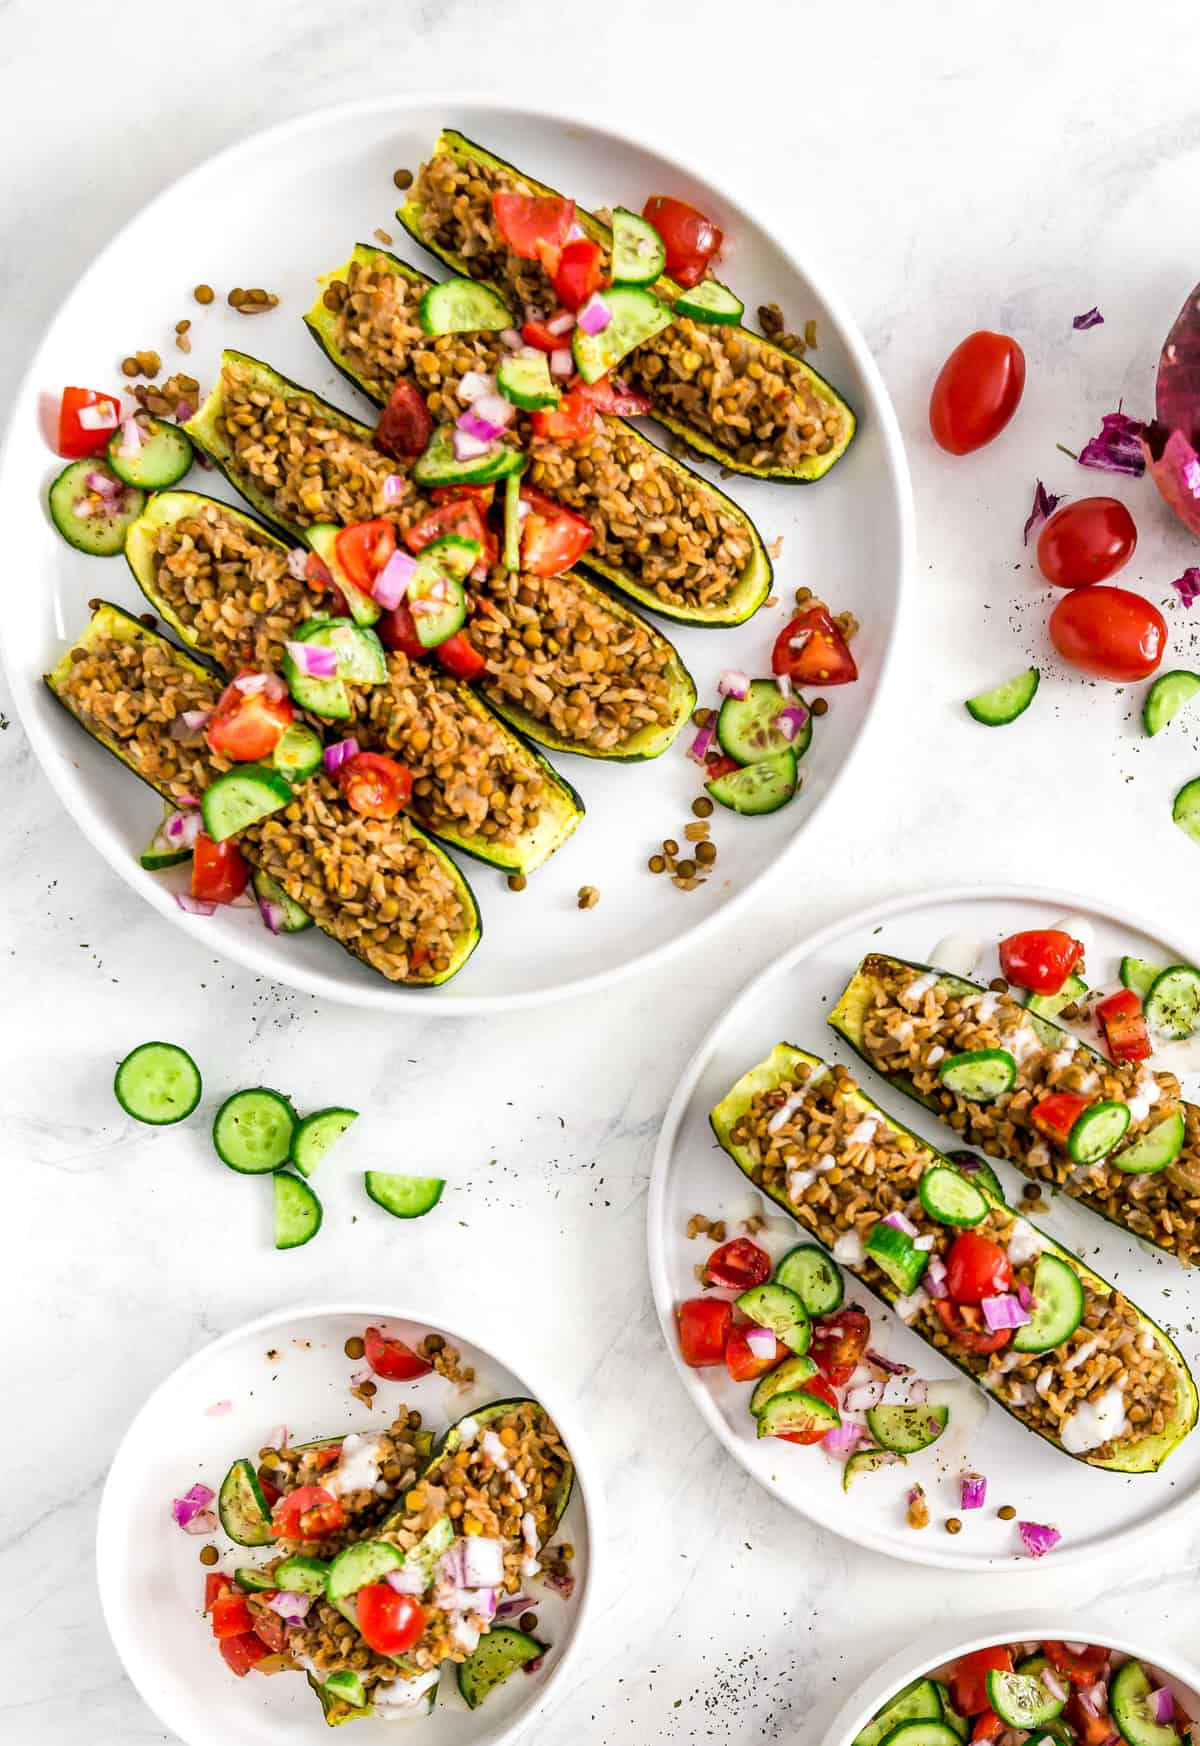 Middle Eastern Stuffed Zucchini Boats, Vegan zucchini boats, vegan dinner, zucchini, zucchini boats, Middle Eastern, Middle Eastern dinner, plant based dinner, plant based, vegan, vegetarian, whole food plant based, gluten free, recipe, wfpb, healthy, healthy vegan, oil free, no refined sugar, no oil, refined sugar free, dairy free, dairy, dinner, lunch, healthy recipe, vegan meal